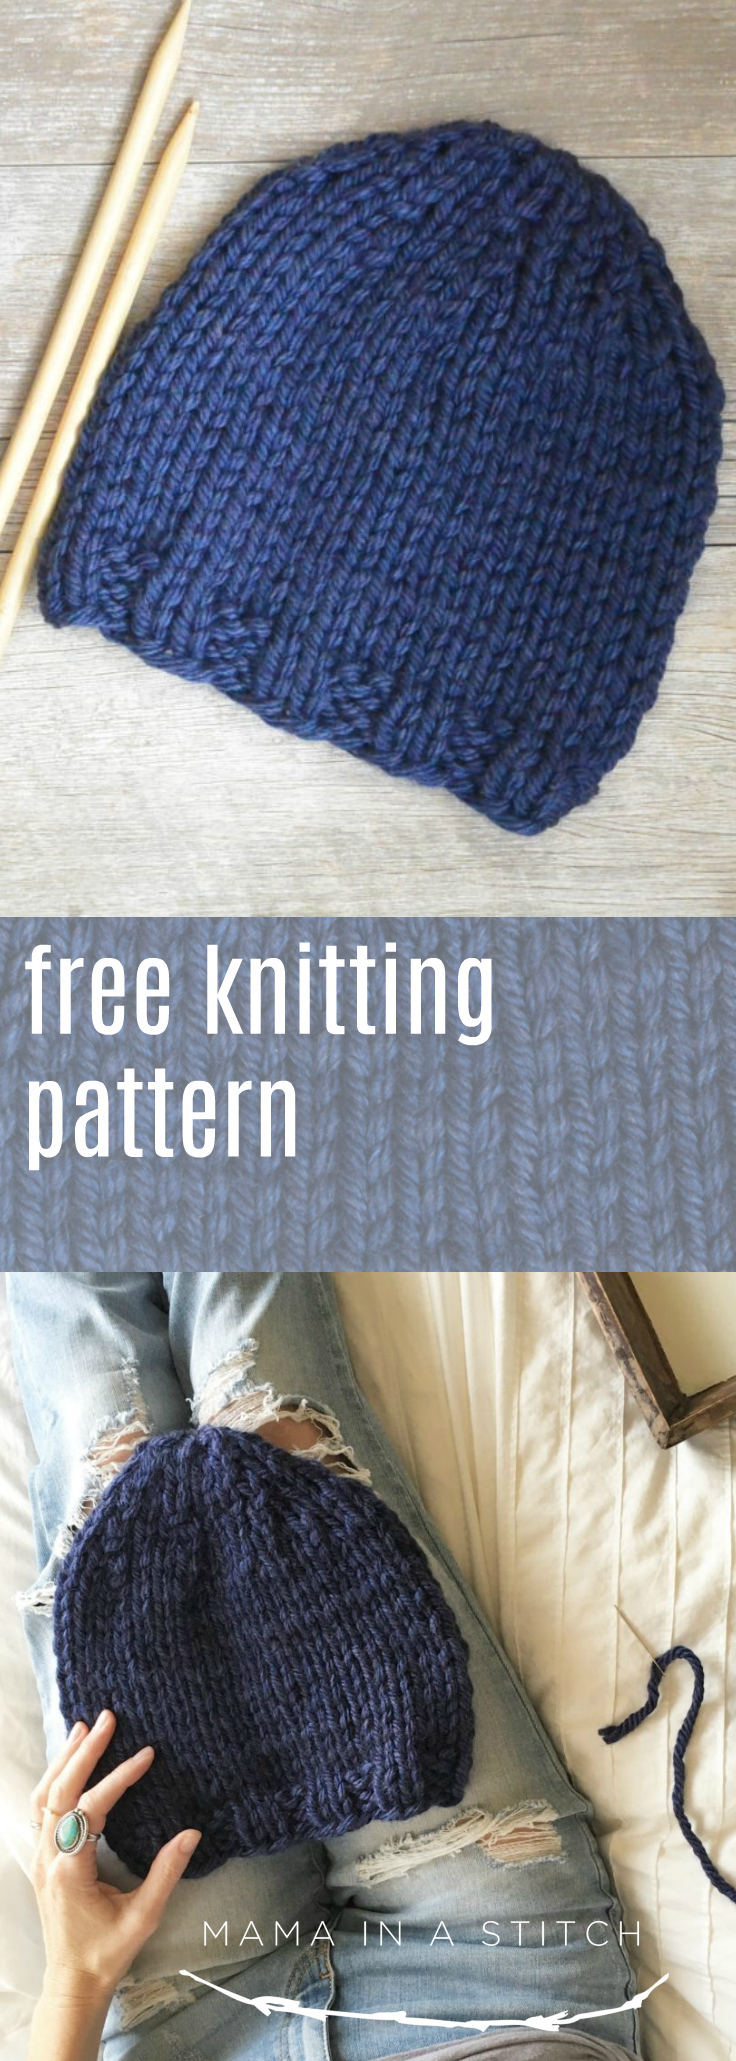 This super easy hat knitting pattern is perfect for beginners! It's knit flat and the free pattern is simple to understand. #knitting #crochet #crafts #diy